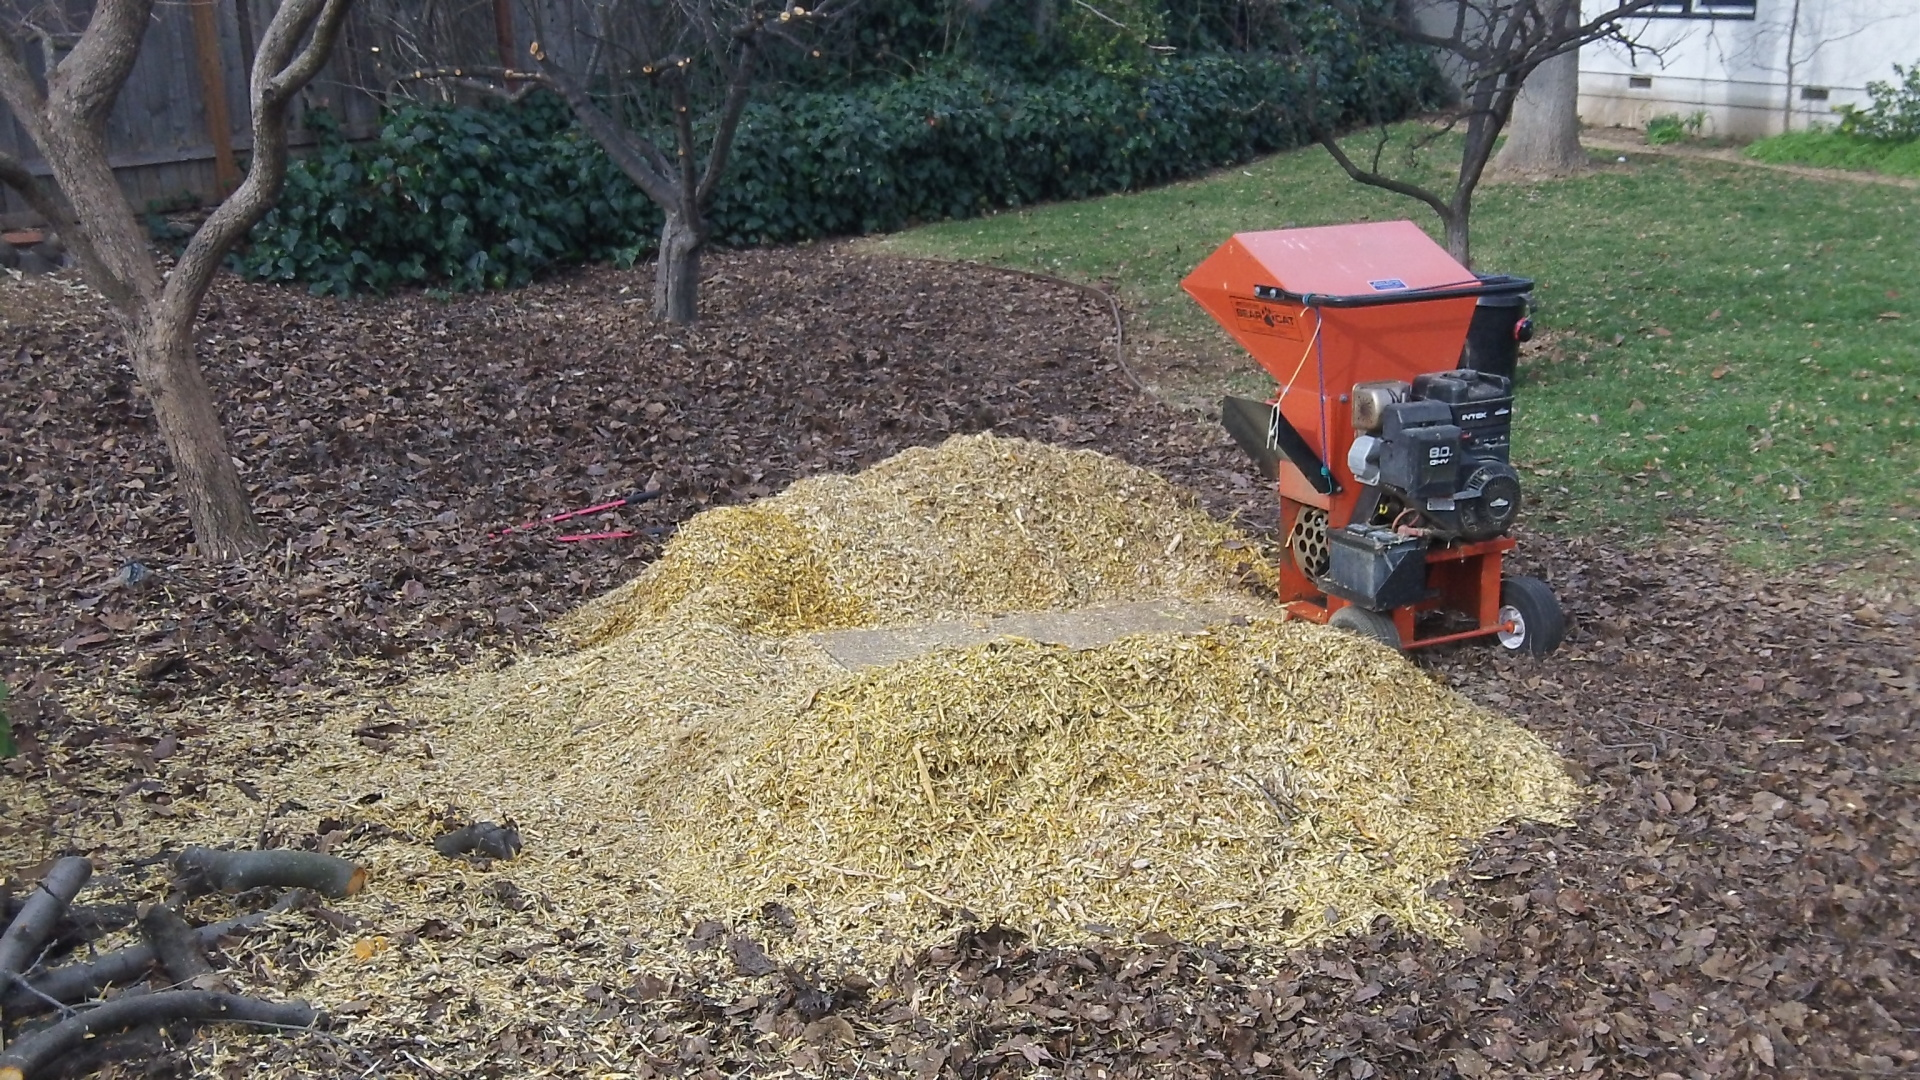 mulch on site -chipper/shredder